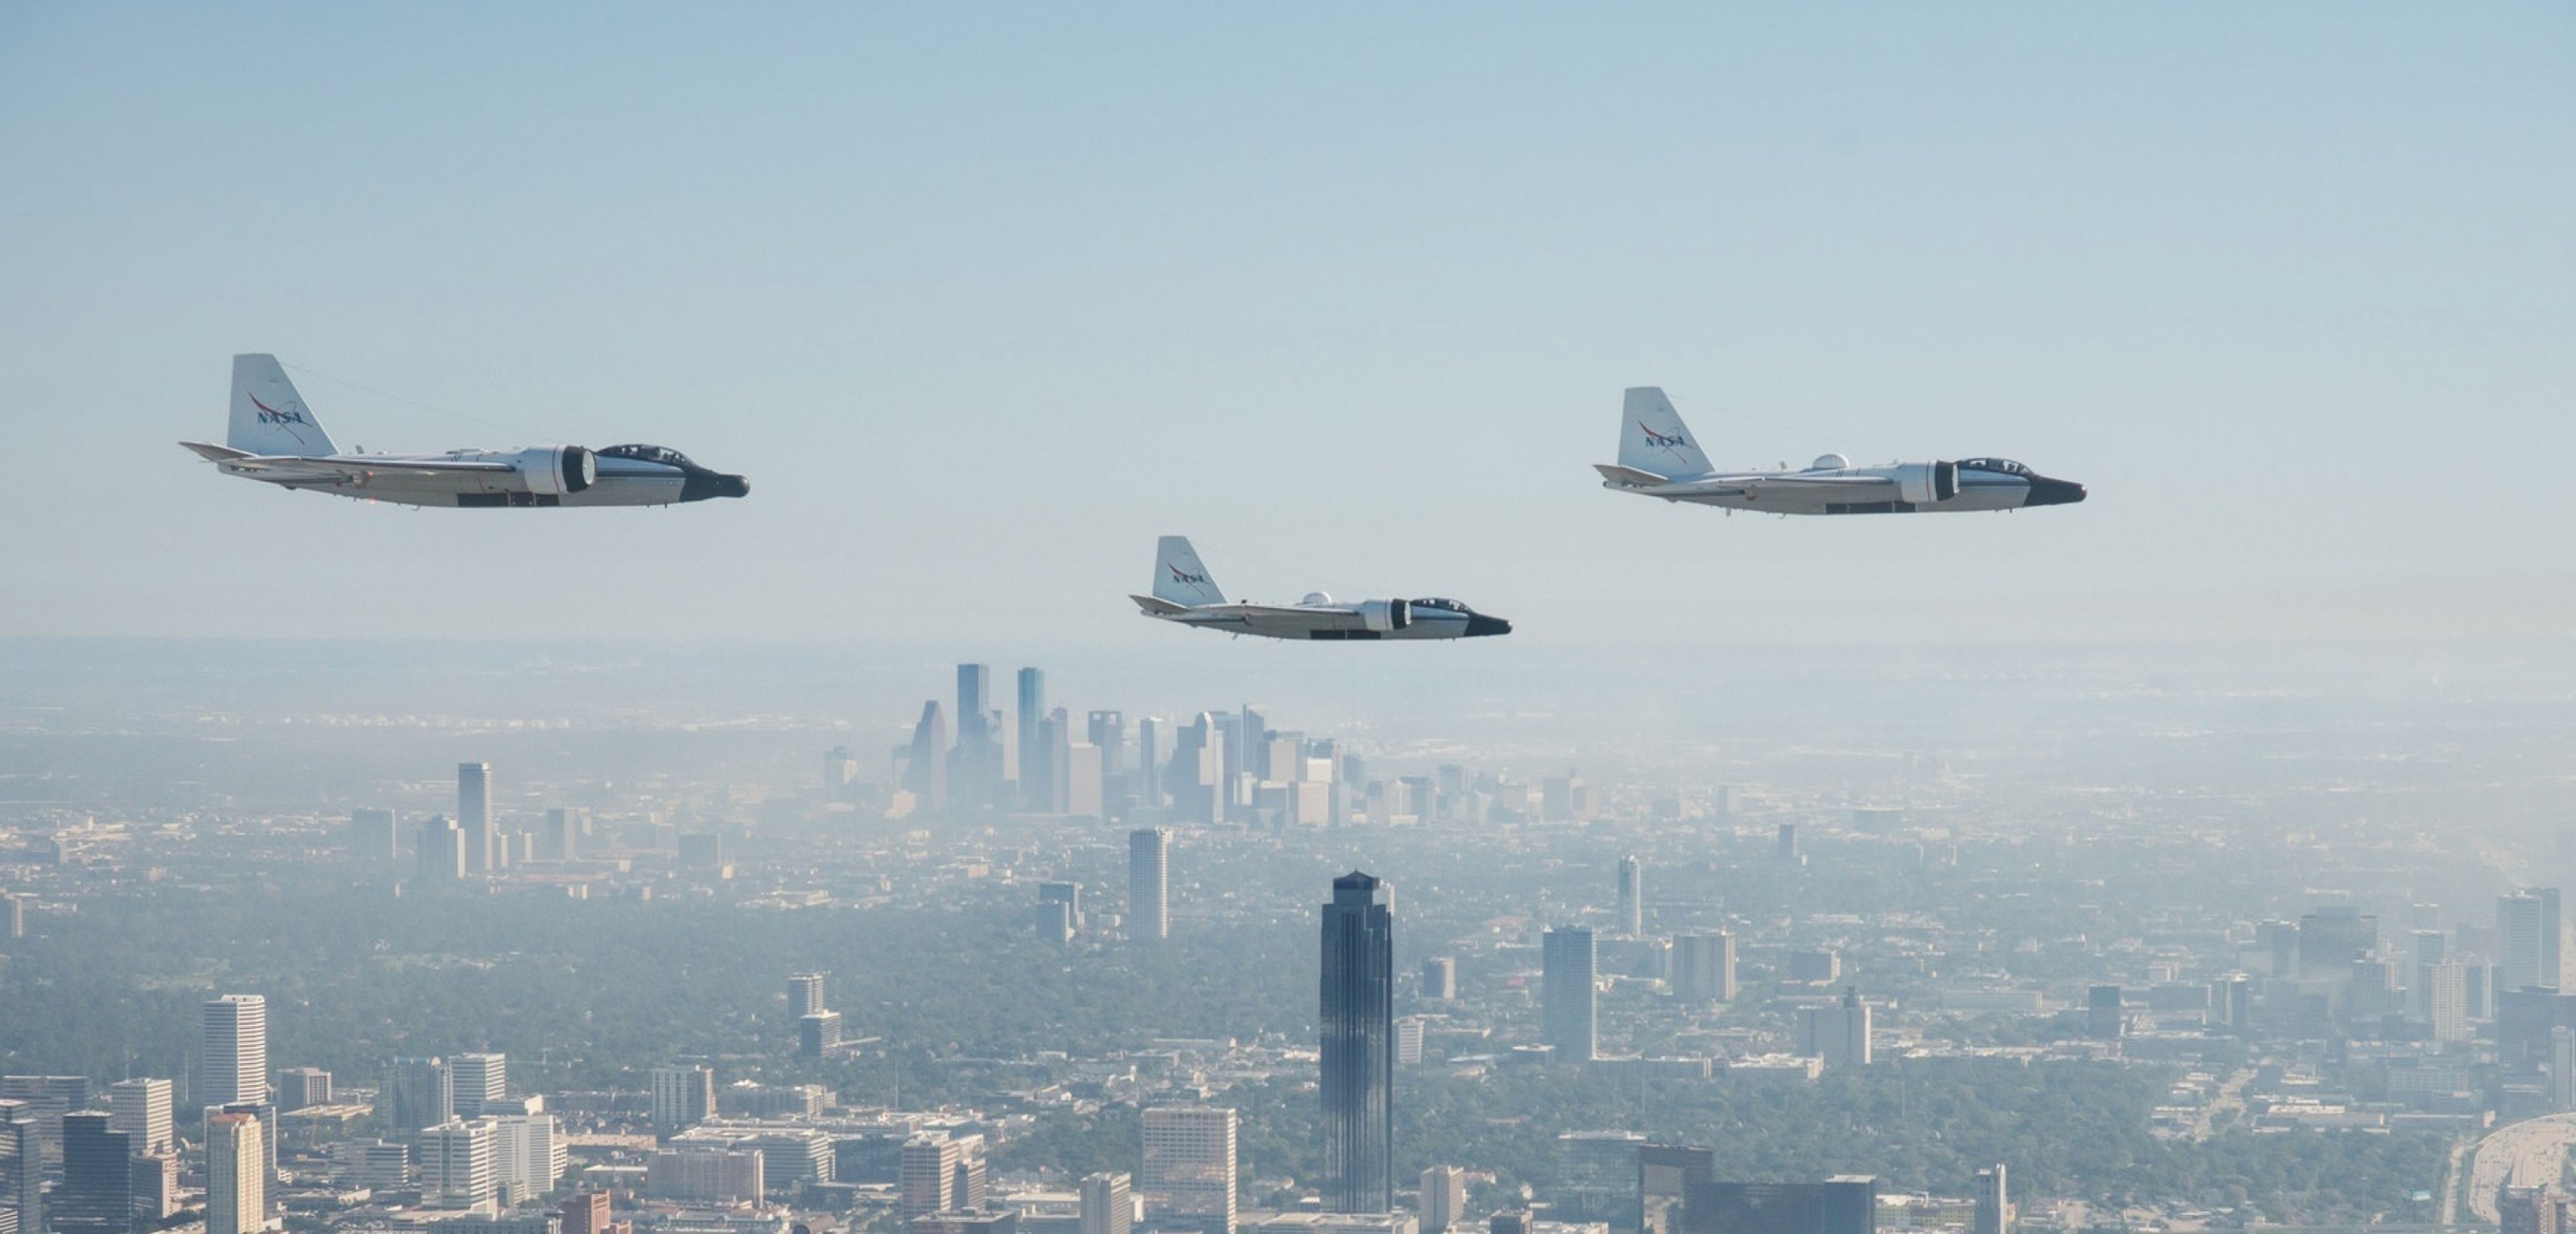 NASA's three WB-57s flying over Houston. This footage was captured by the AIRS/DyNAMITE system technology that was developed in Southern Research Engineering labs.